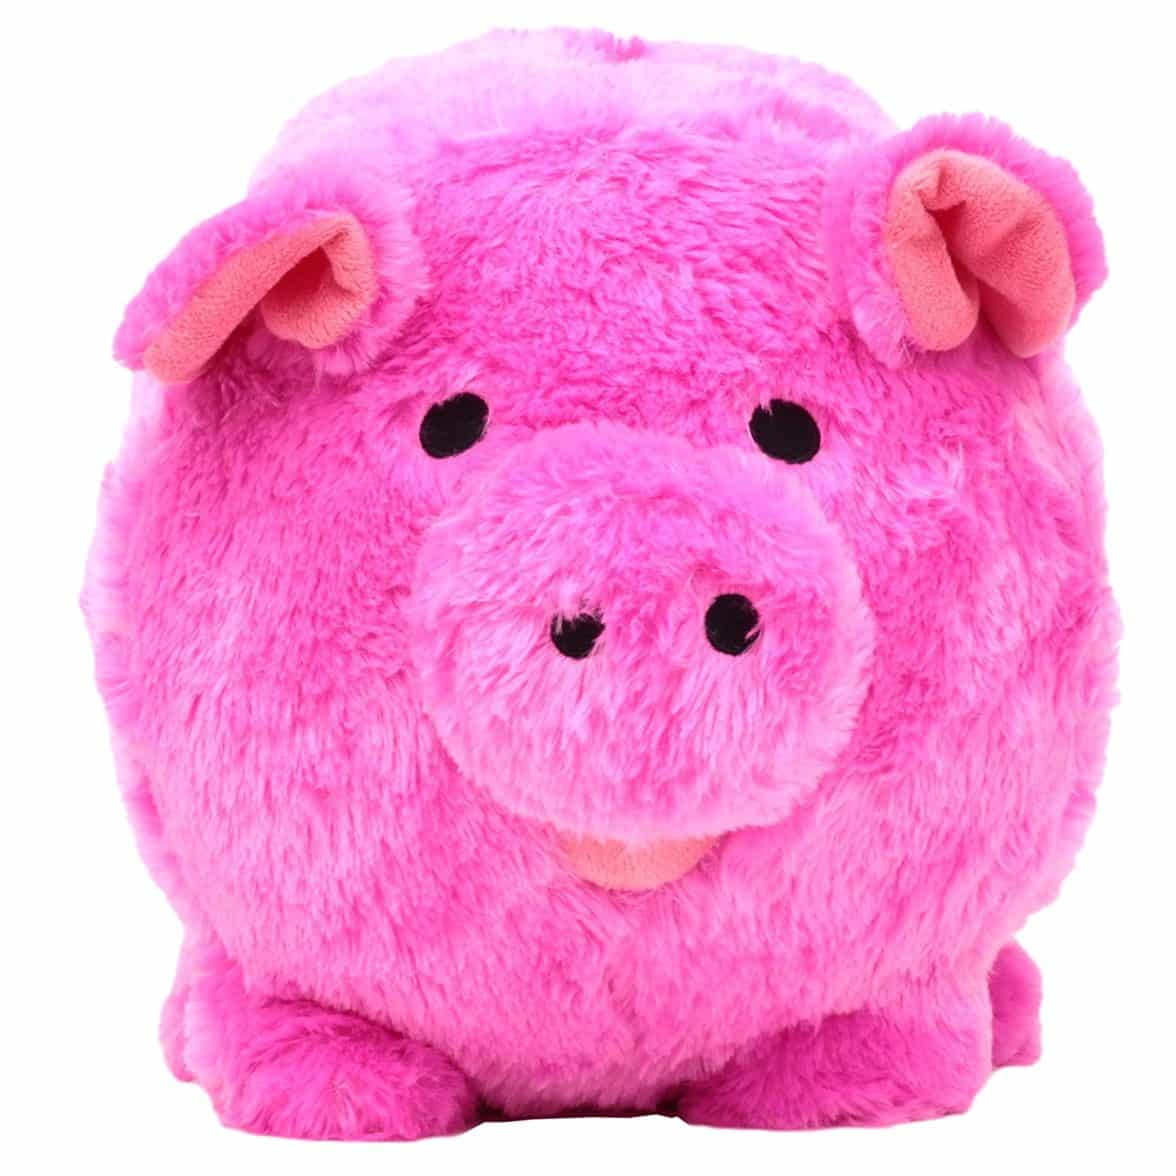 Pink Plastic Piggy Banks Buy Rubber Piggy Bank Online The Piggy Store Page 2